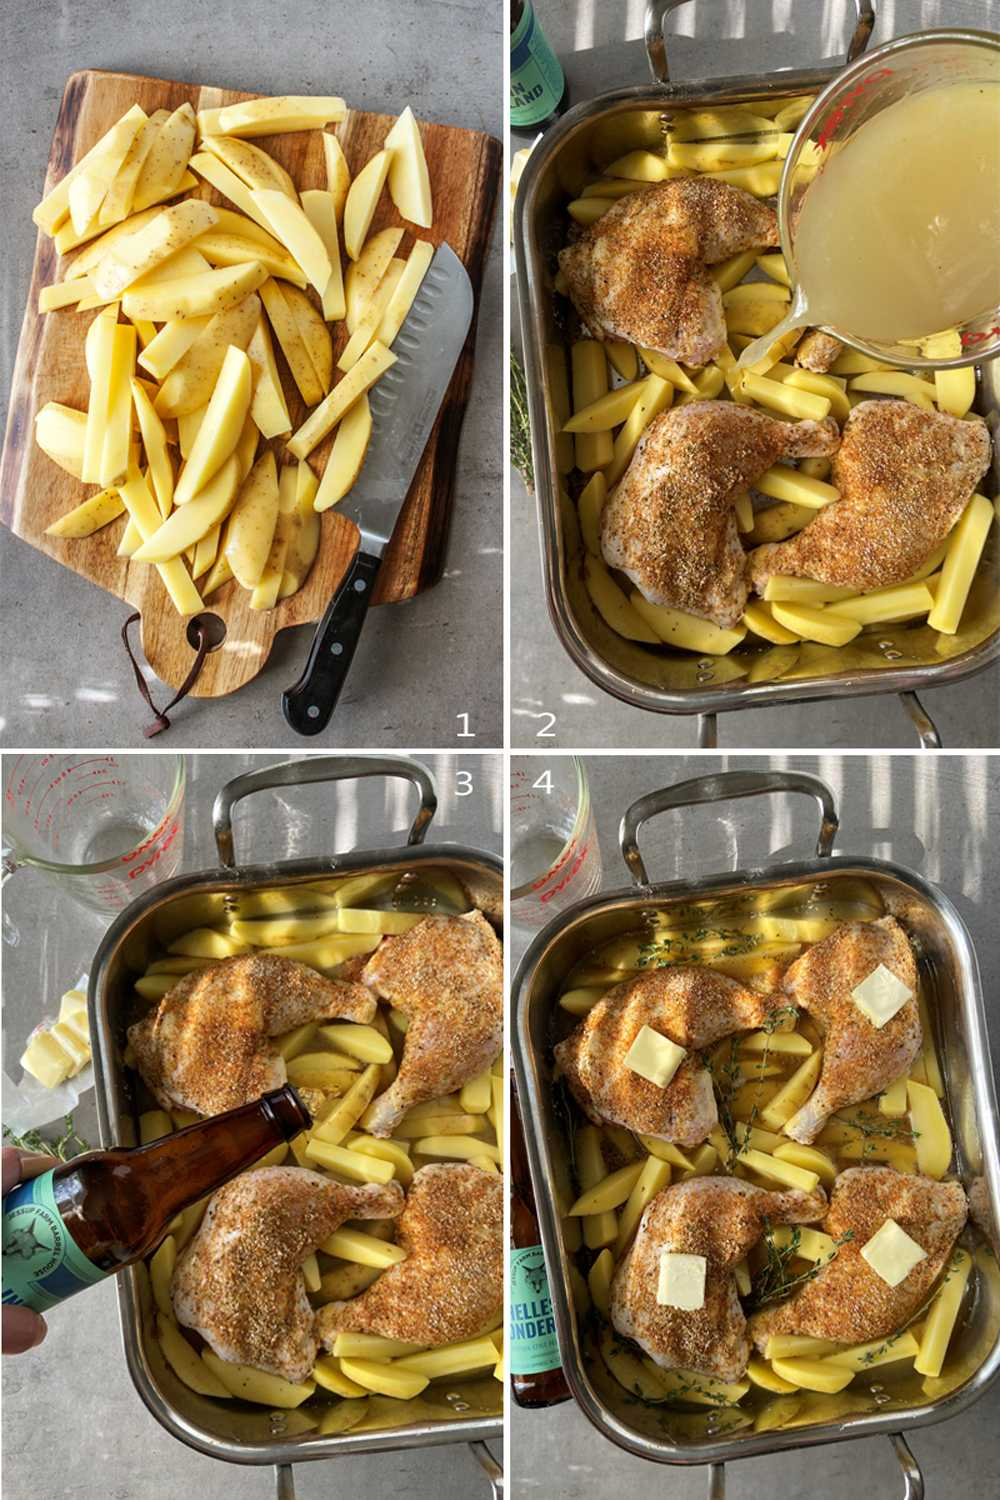 Steps to make beer chicken in oven with potatoes.